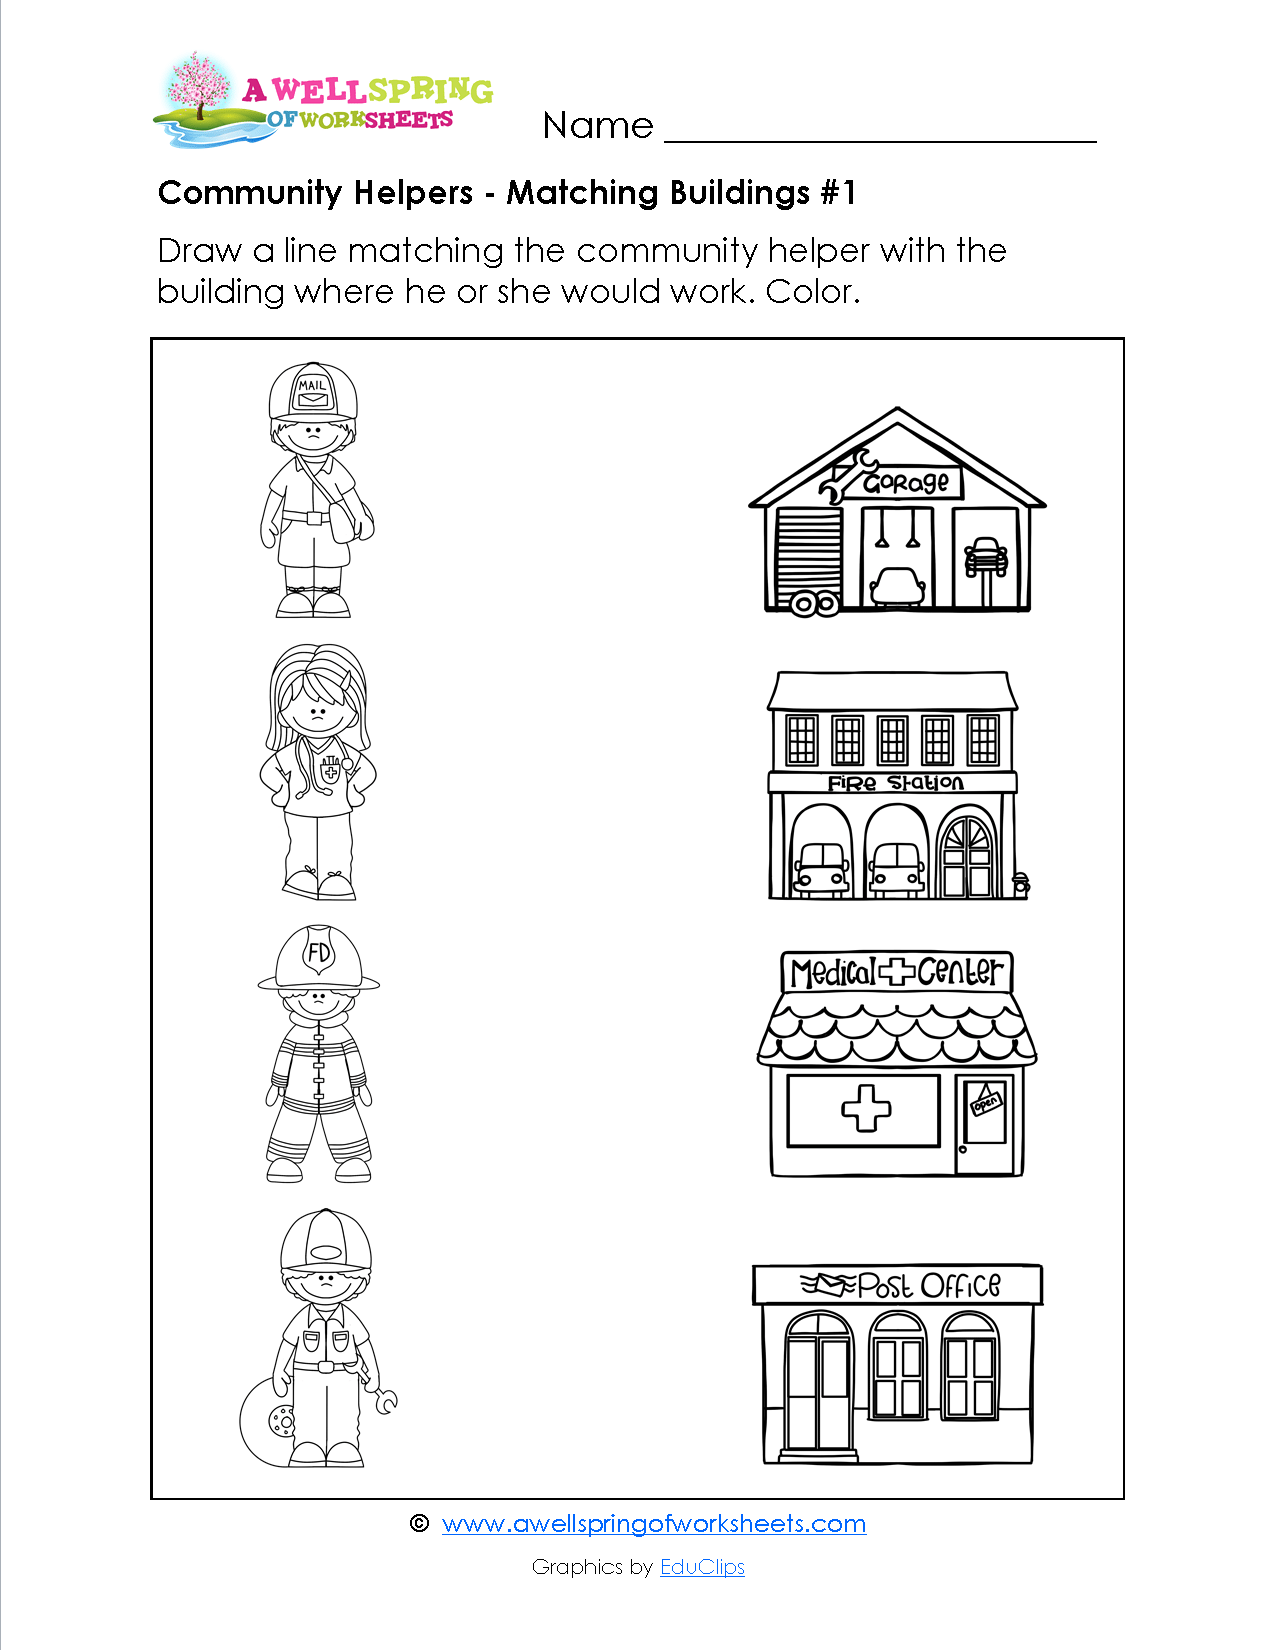 Community Worksheets For Kids